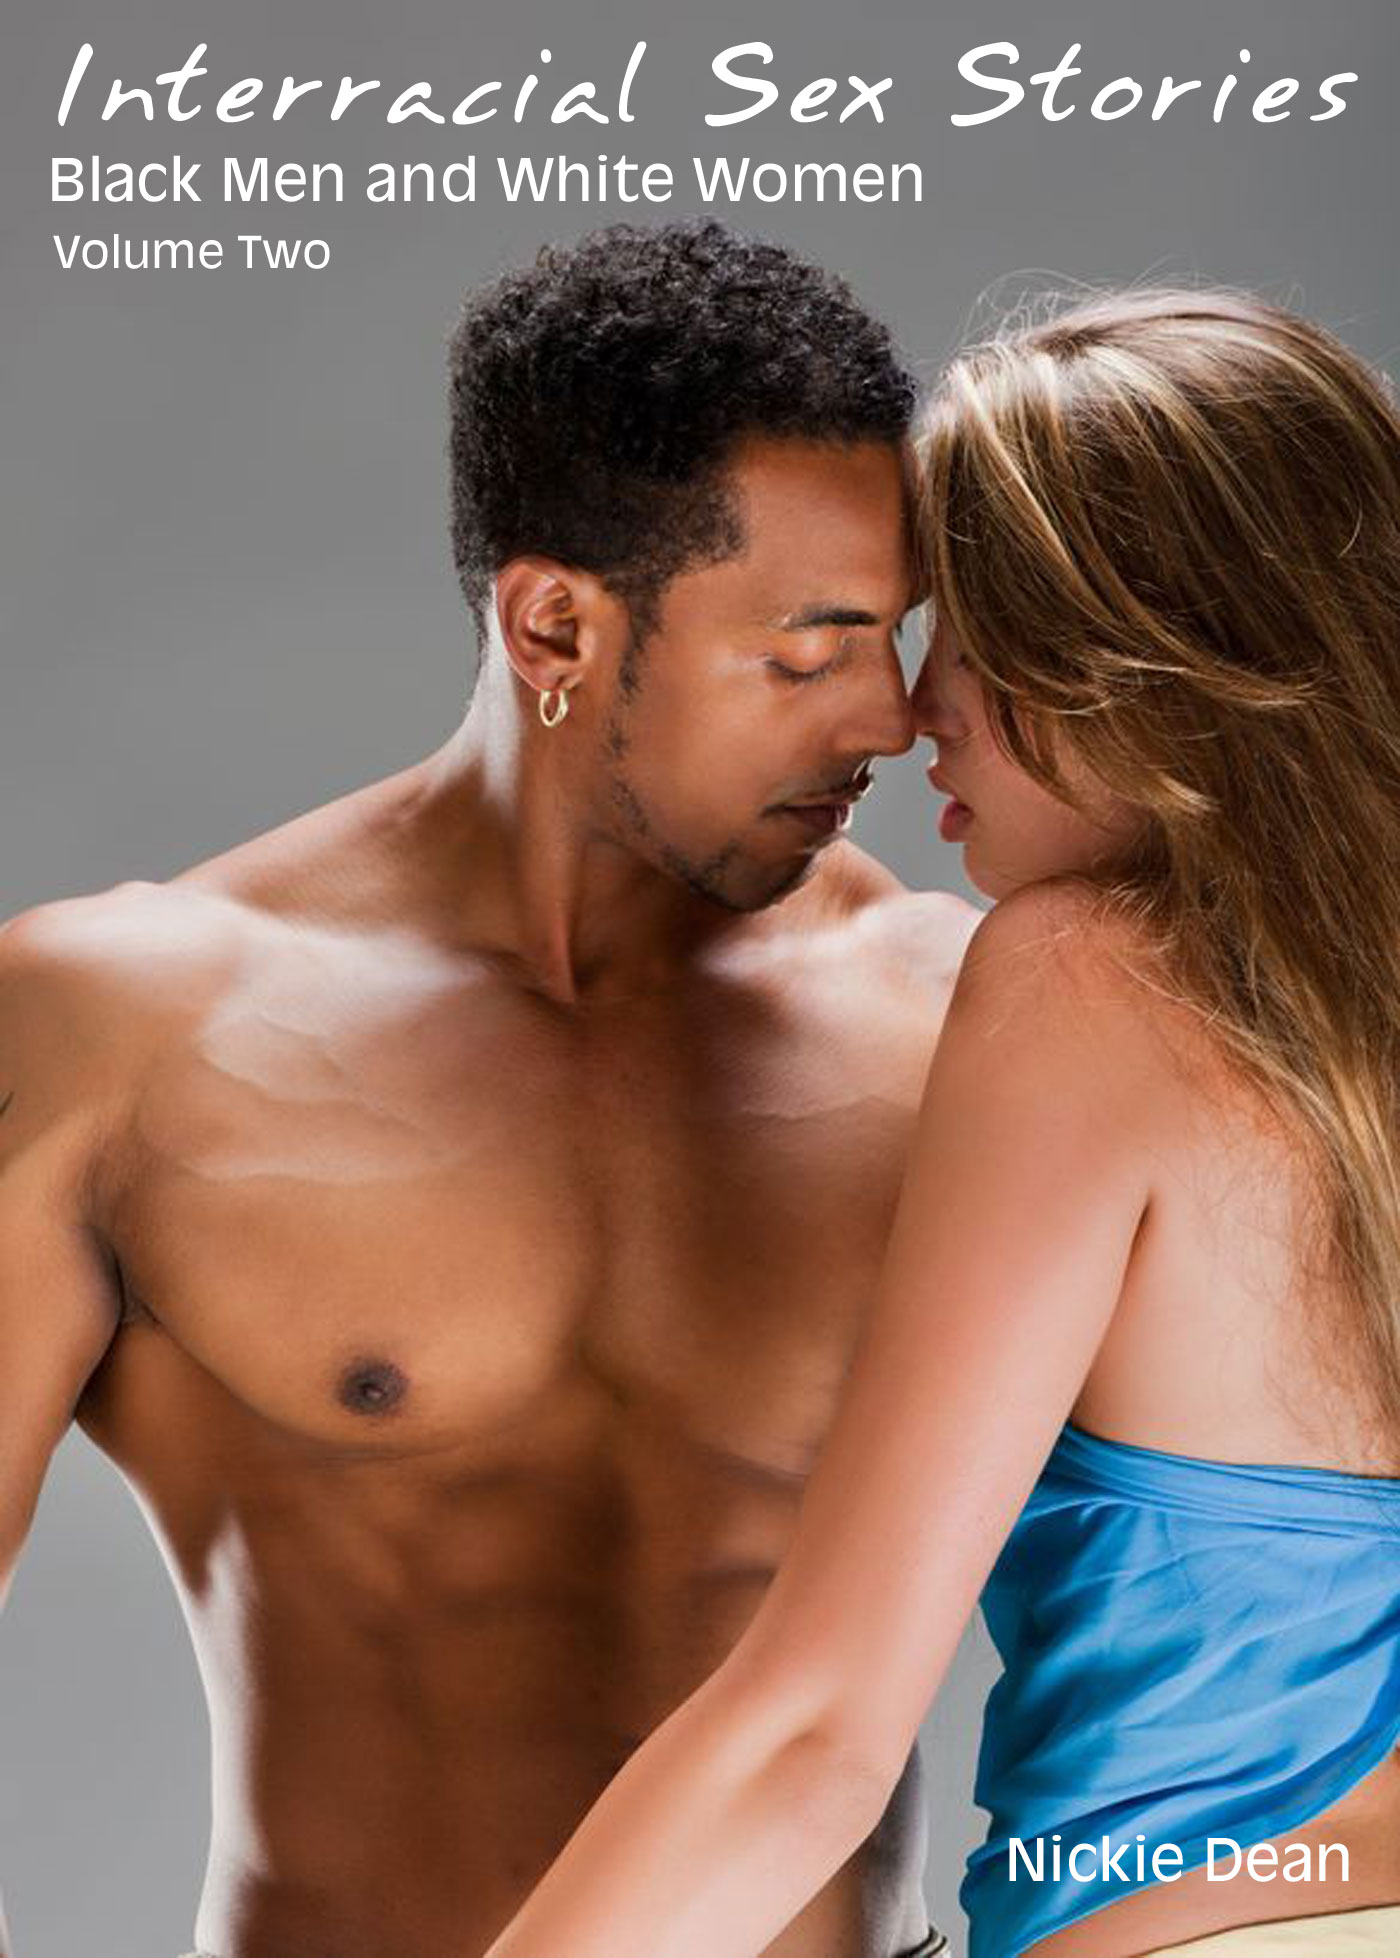 Sex stories of black men with white women